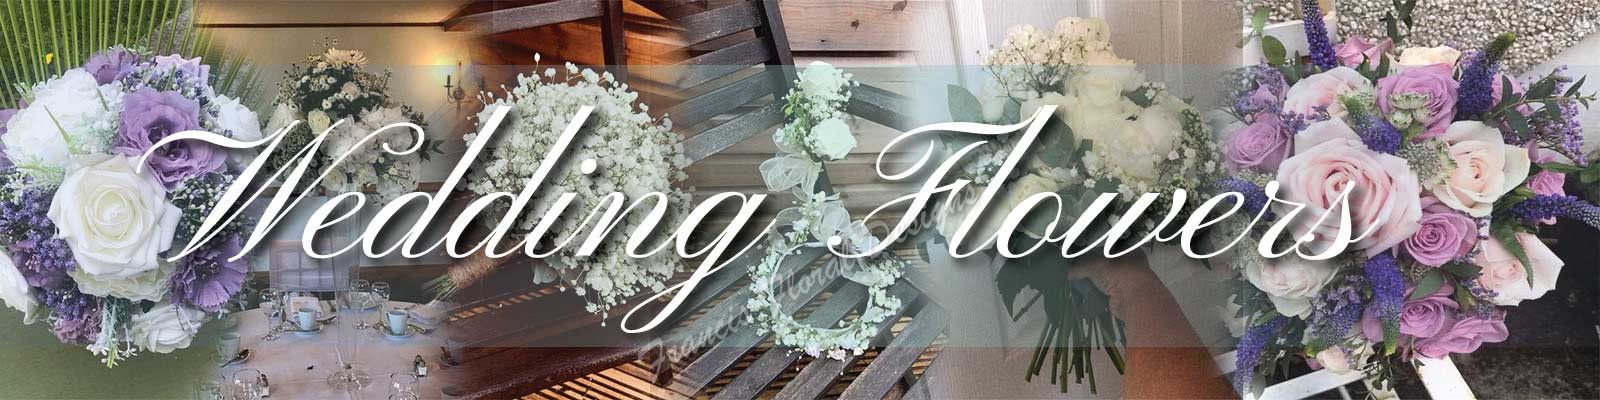 Francis-Floral-Designs-Swansea-Wedding-Flowers-Banner